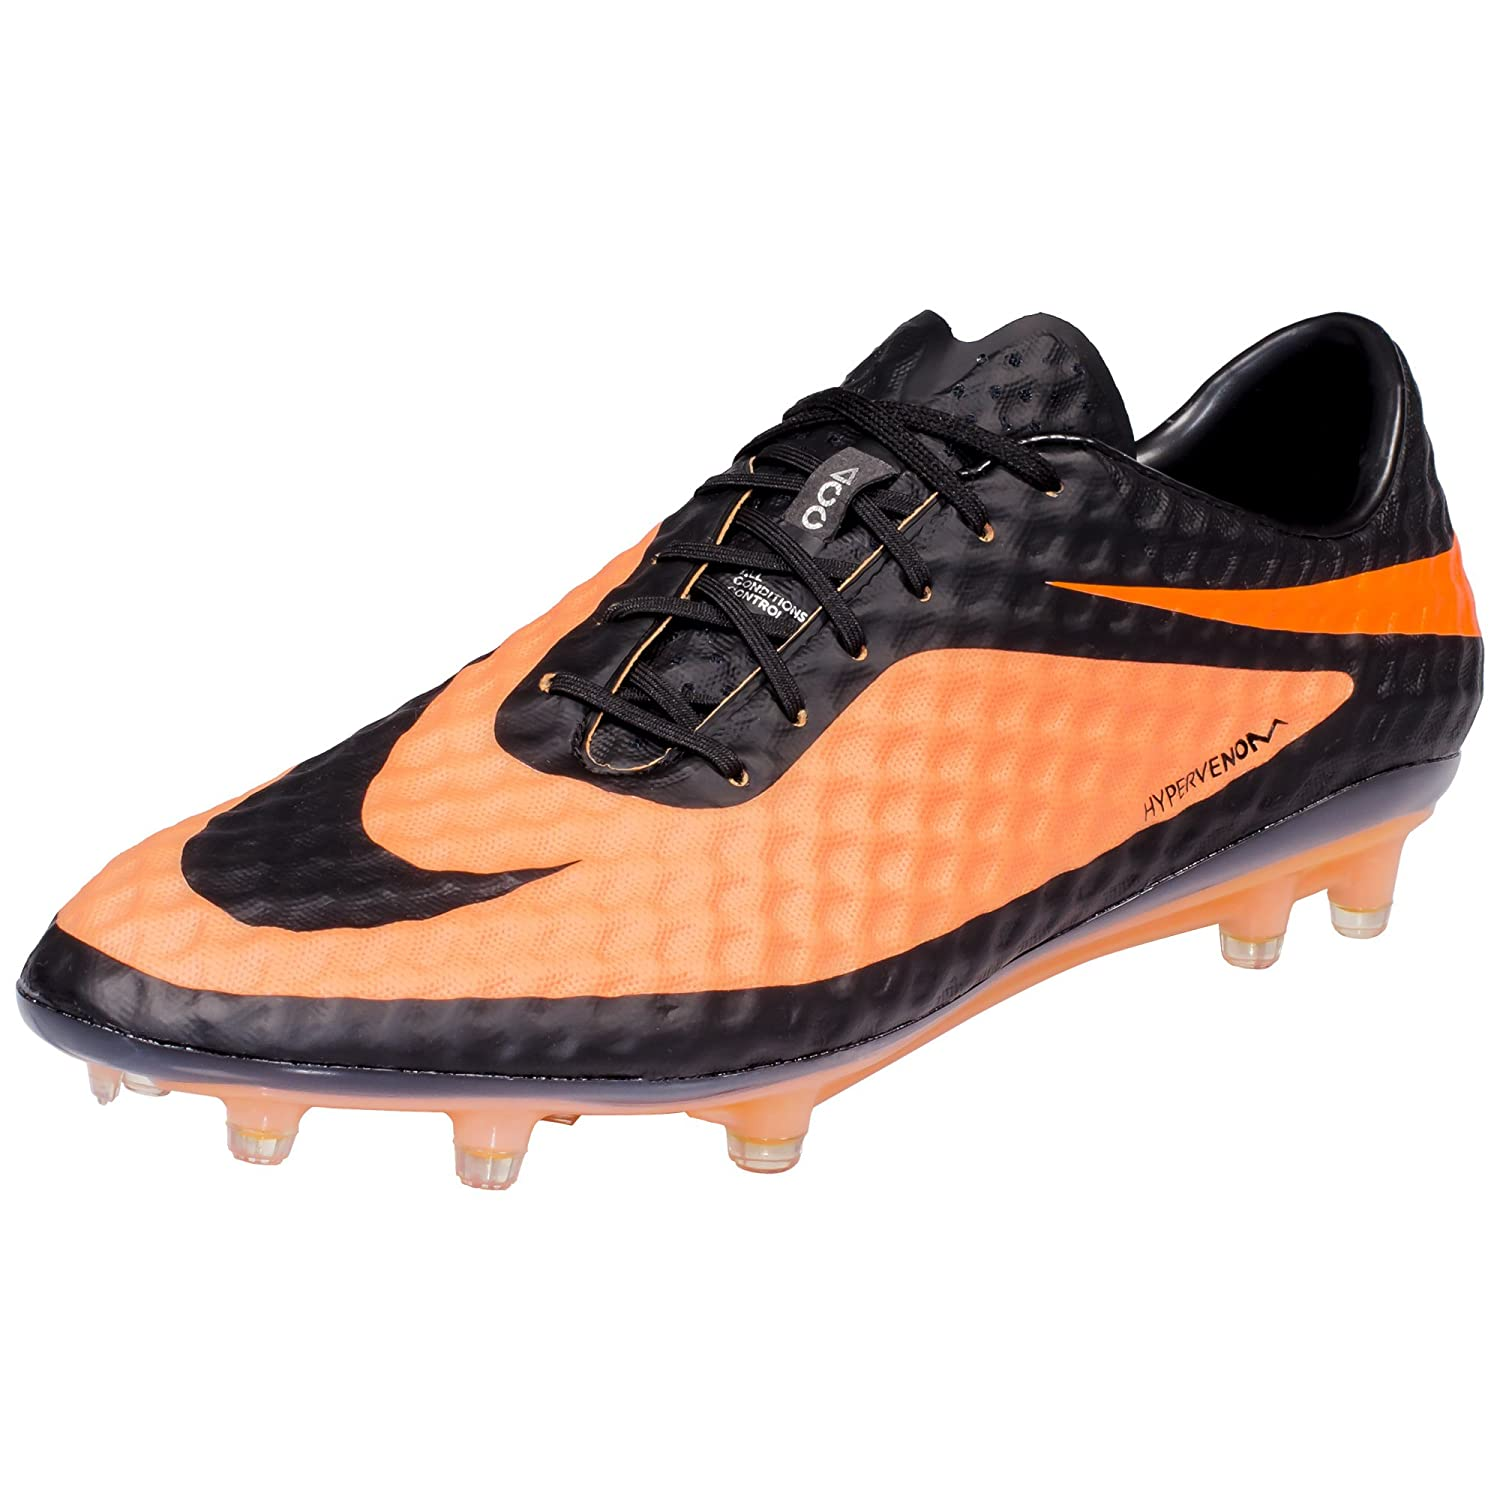 Sumergido Abuelo Identidad  Buy Nike Men's Hypervenom Phantom Fg Black and Bright Citrus Sport Football  Boots -5.5 UK/India (38.5 EU)(6 US) at Amazon.in